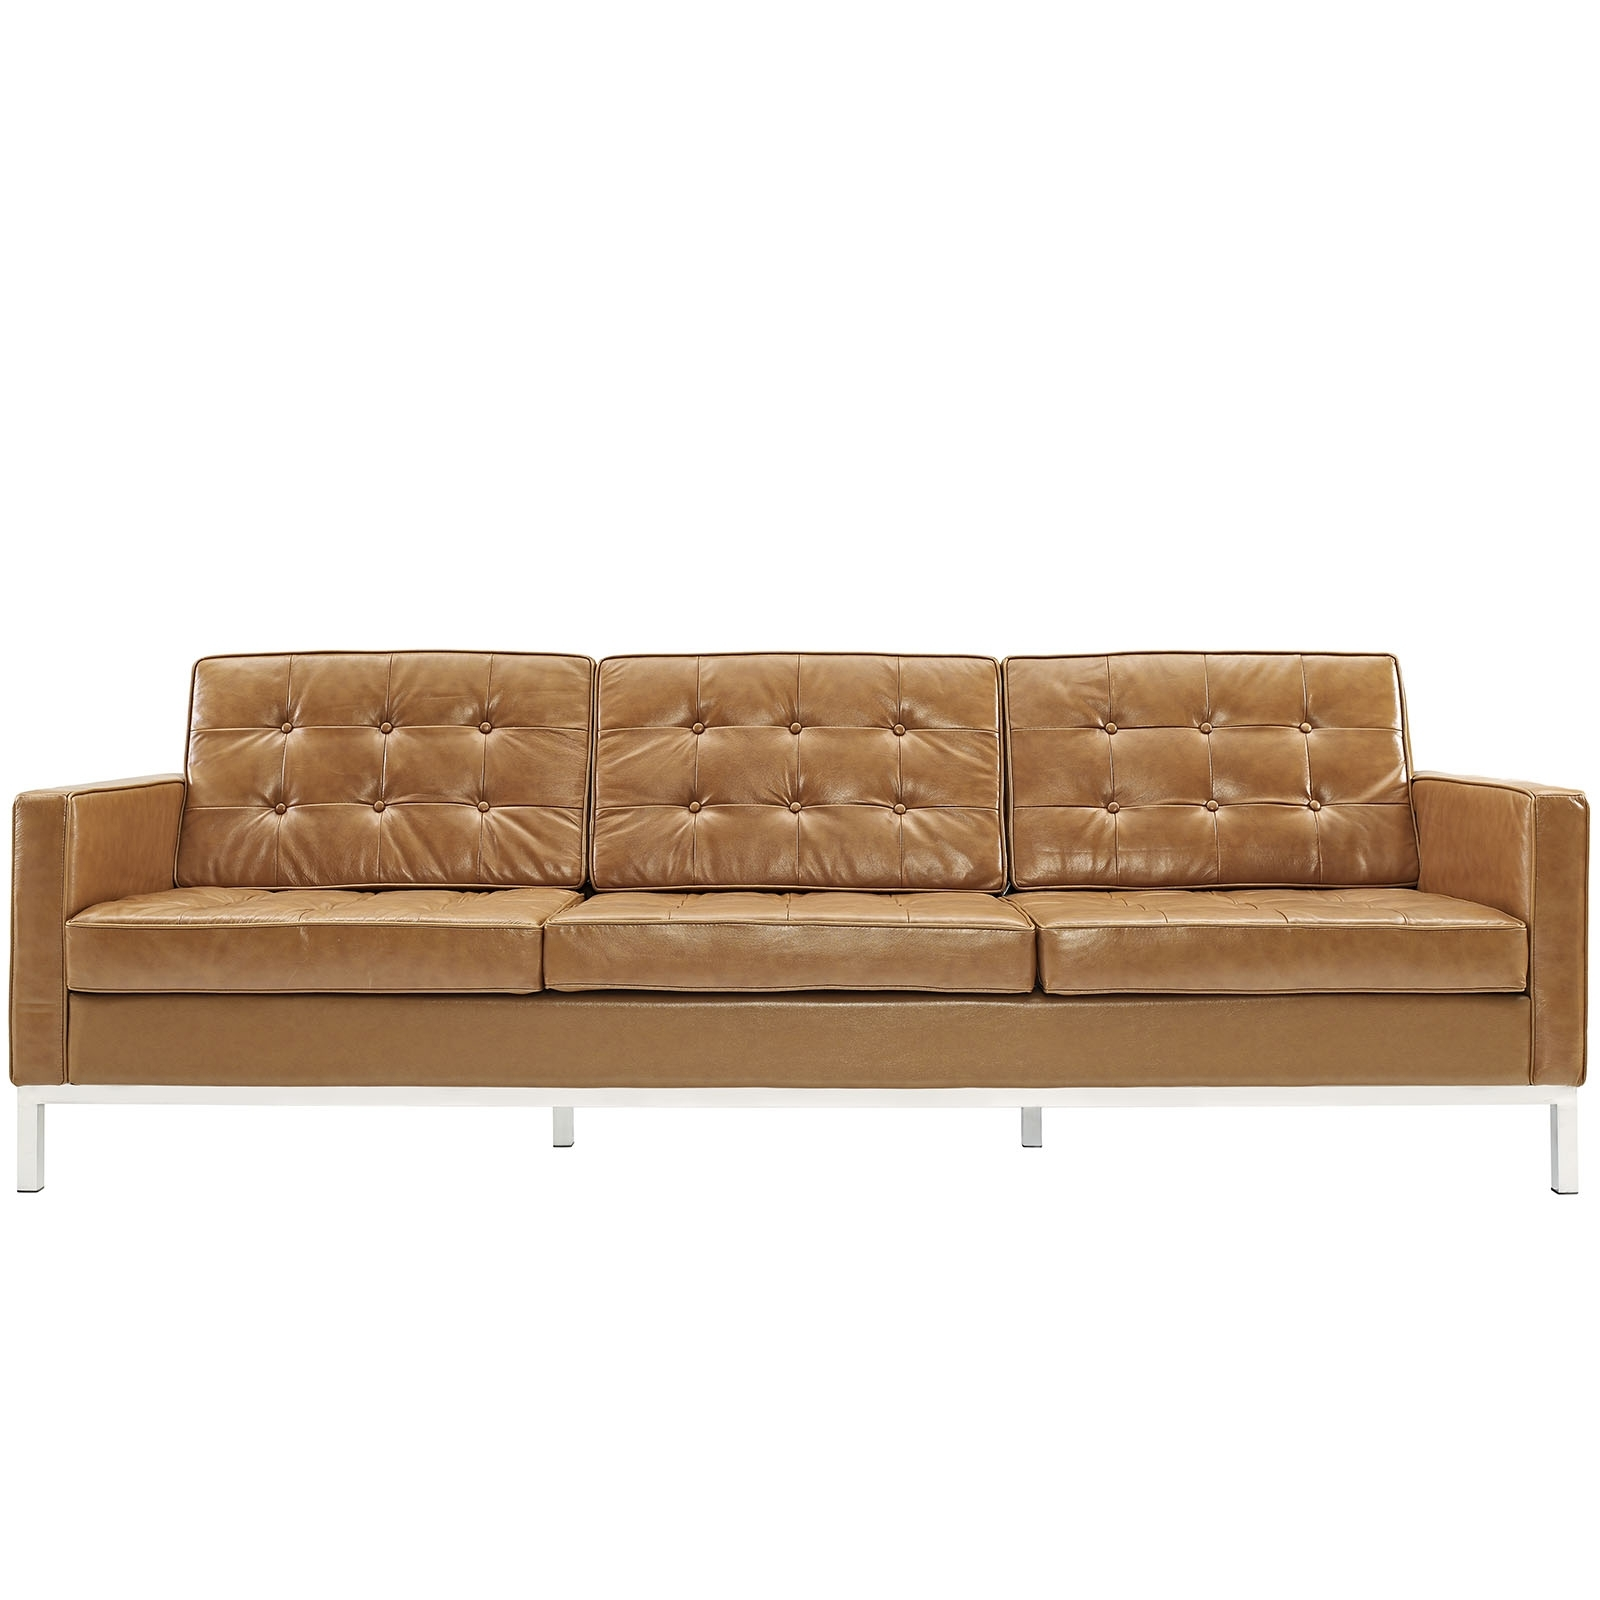 Florence Knoll Style Sofa Couch – Leather Inside Widely Used Florence Knoll Leather Sofas (View 10 of 15)